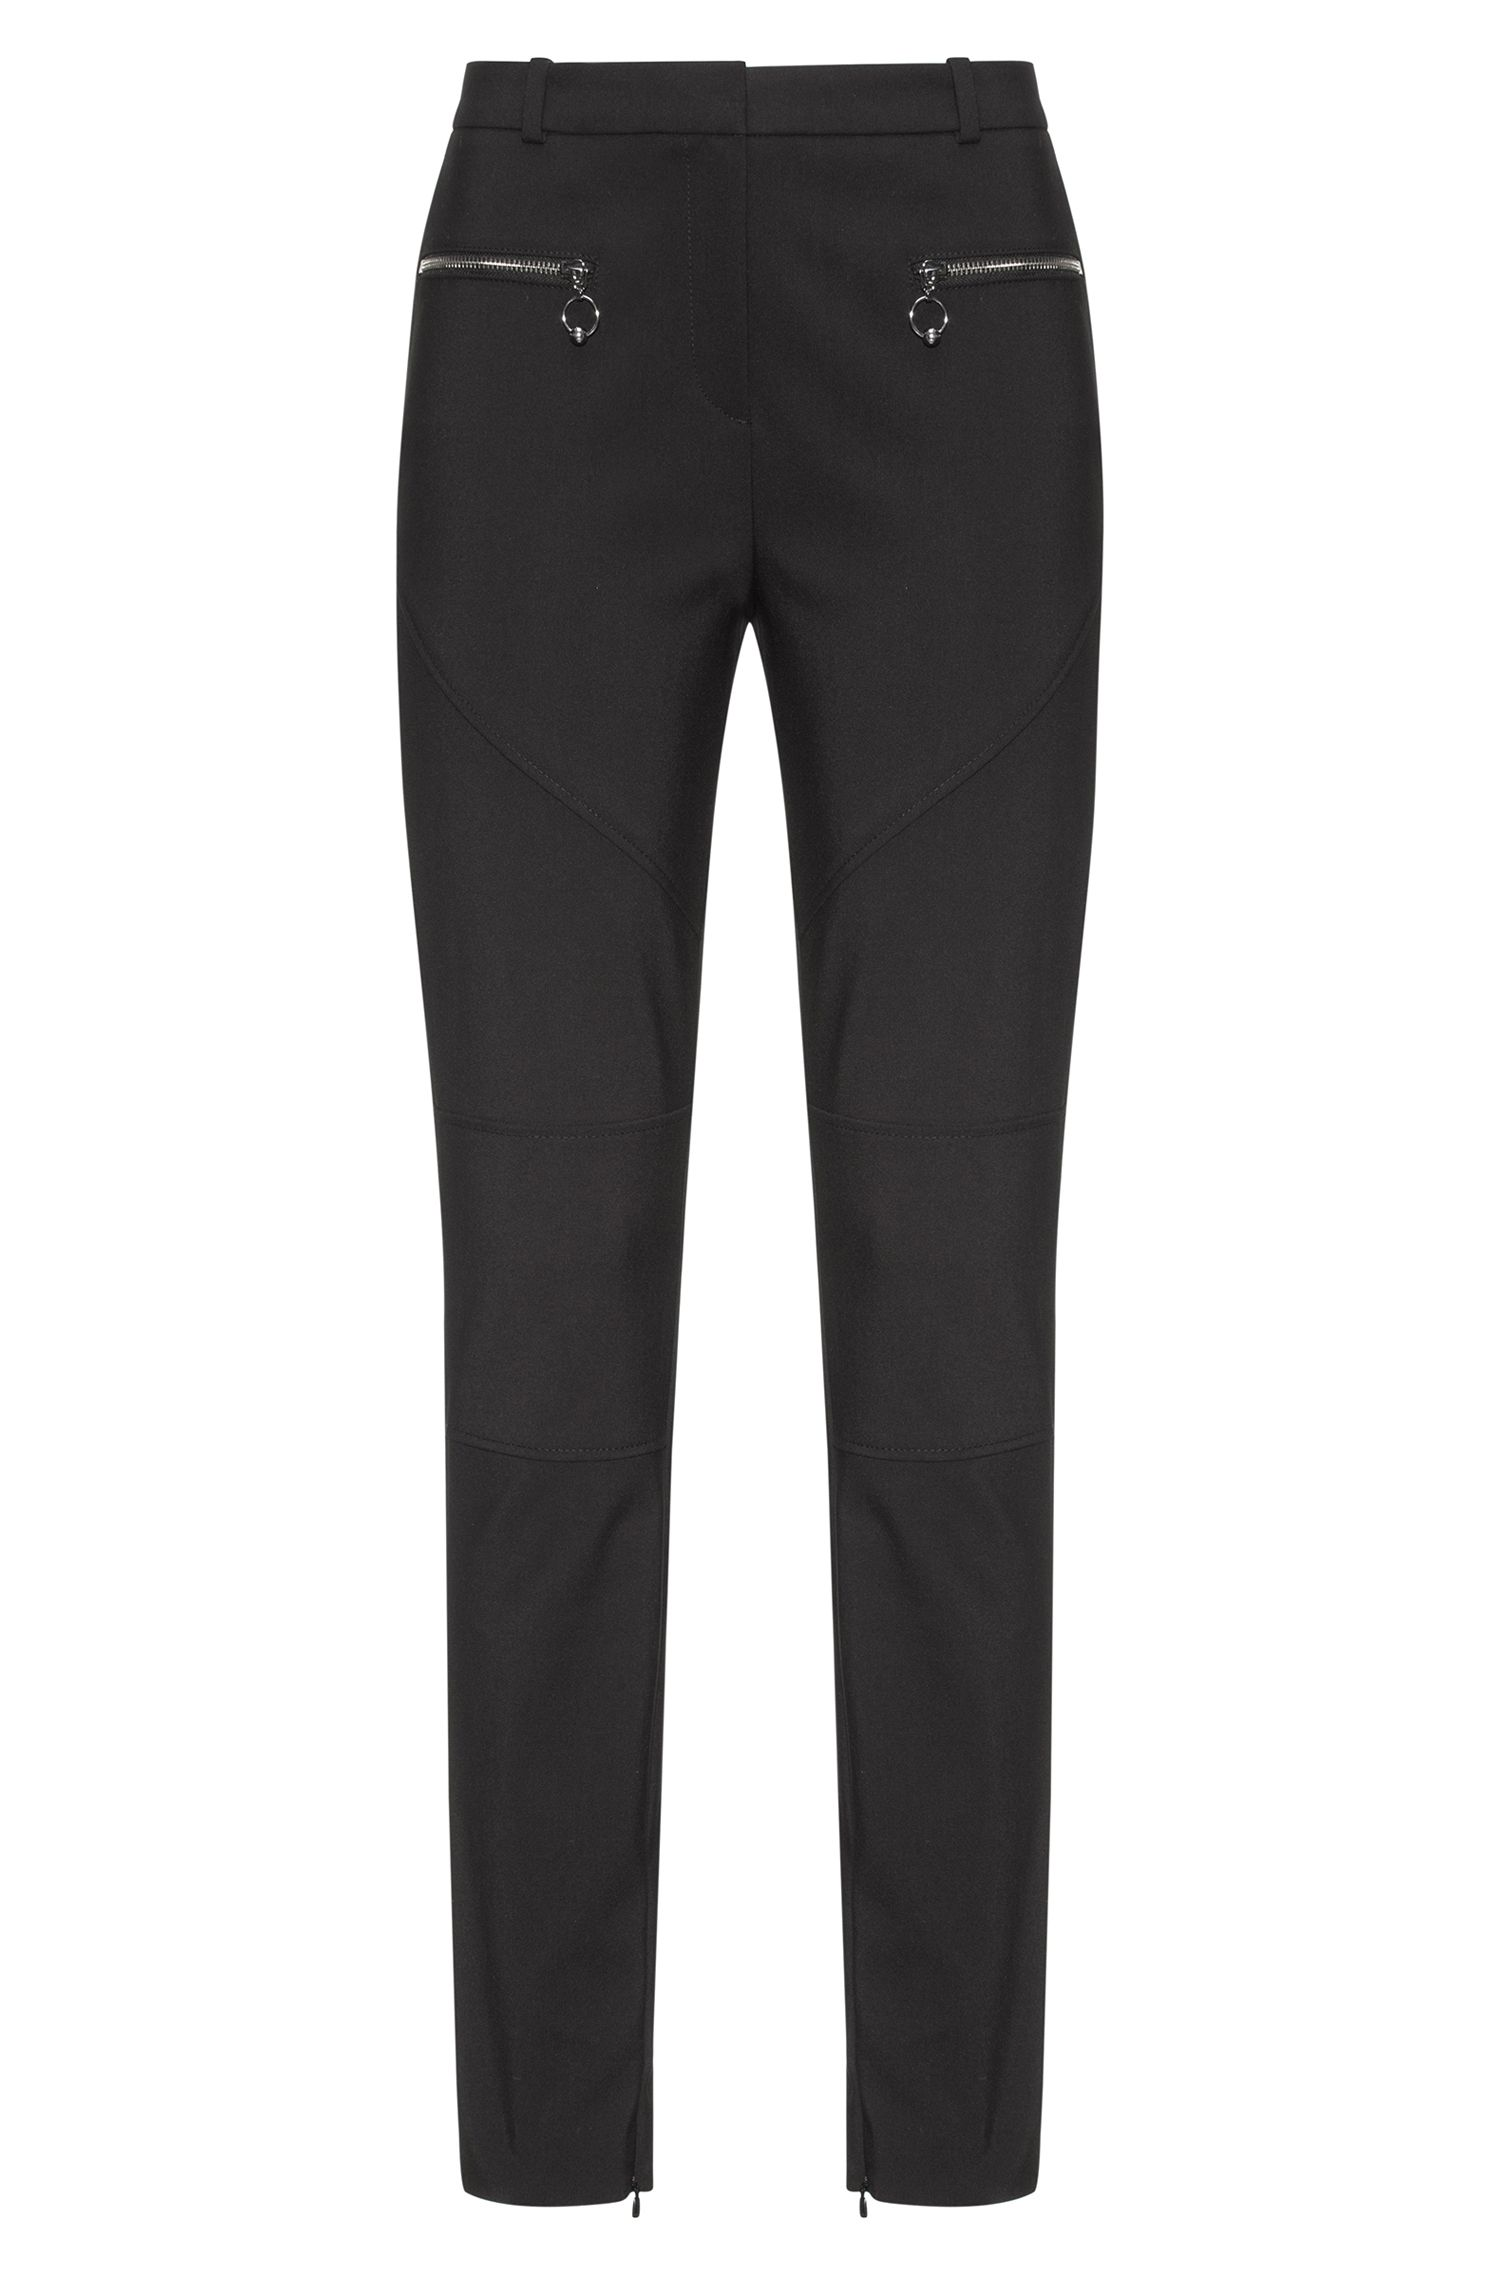 Cotton-blend skinny-fit trousers with biker seams